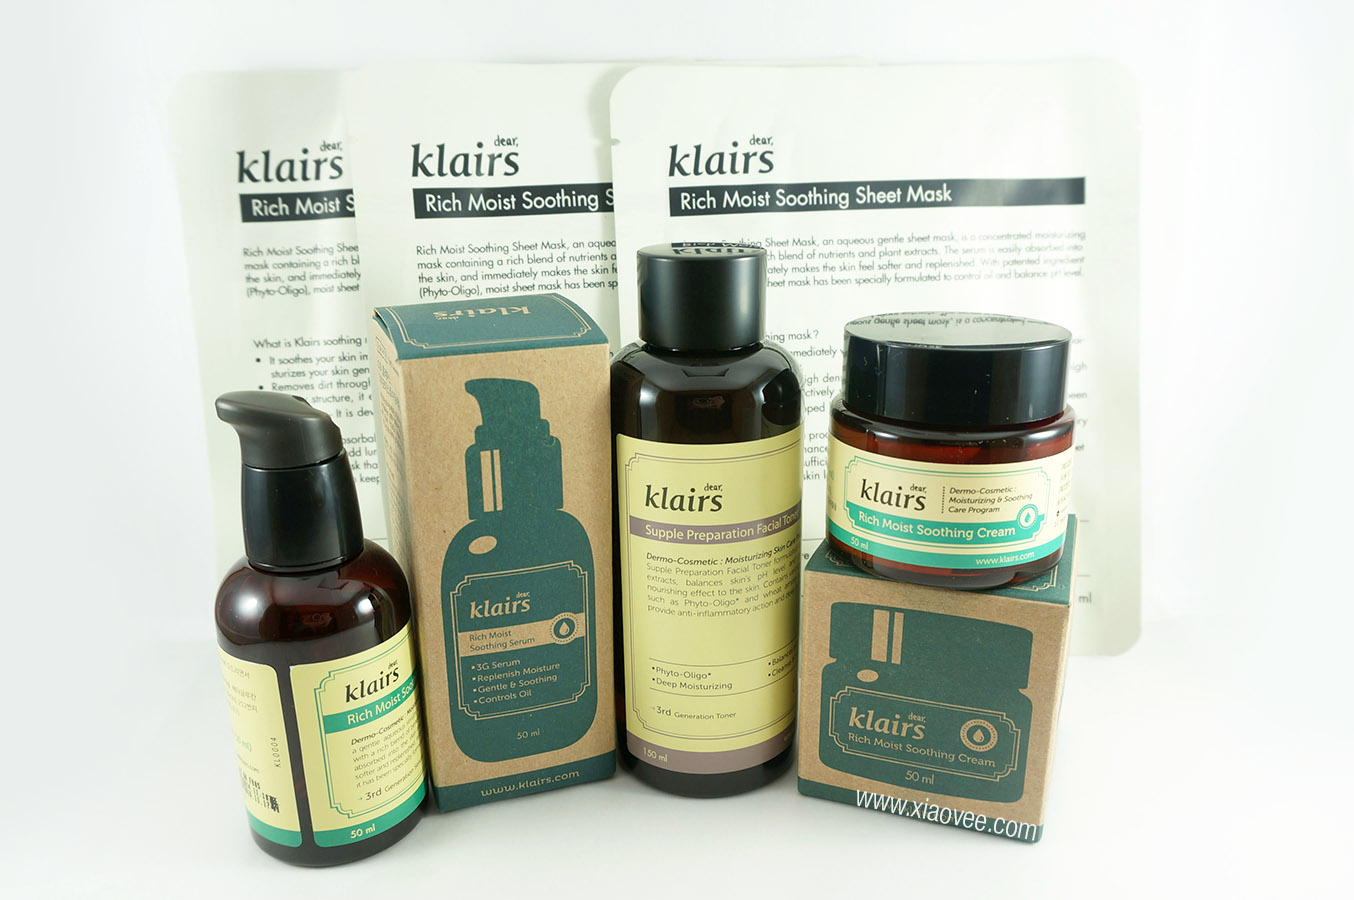 Wishtrend, Klairs Moisture Rescue Set Review, Korean Klairs Skincare Brand, No animal testing skincare, cruelty free skincare, paraben free skincare